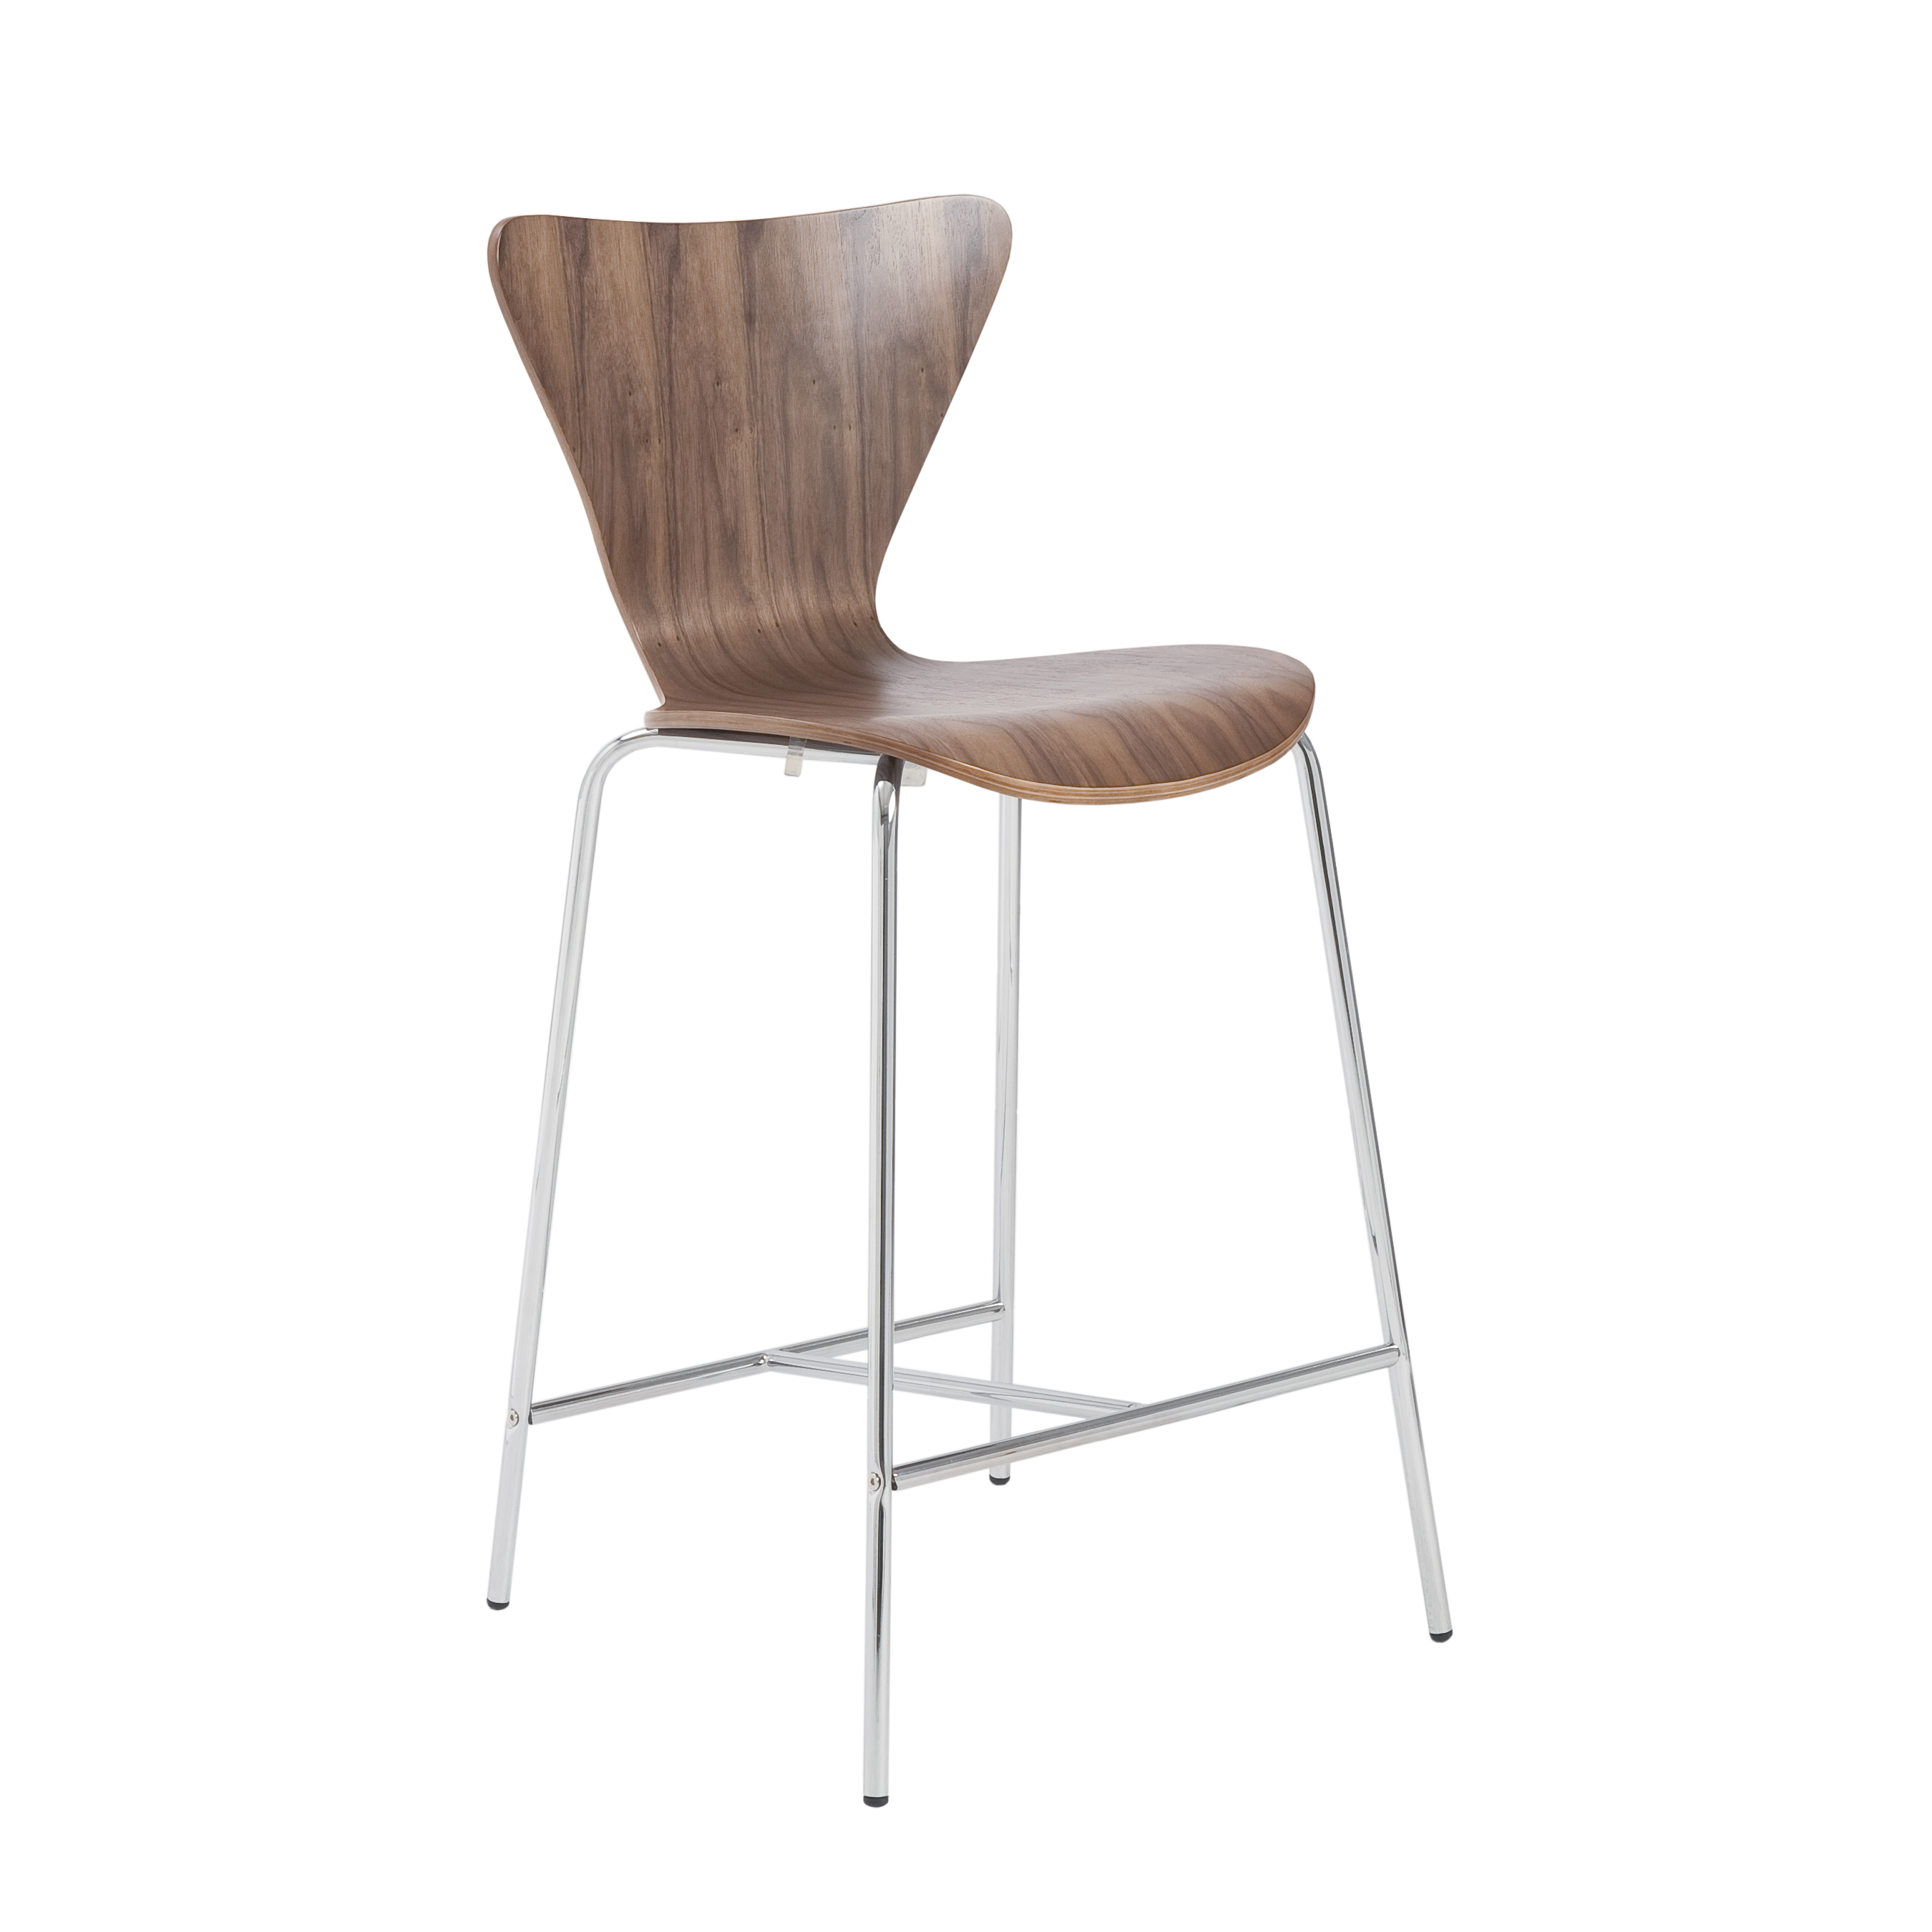 BAR & COUNTER SEATING CHAIR